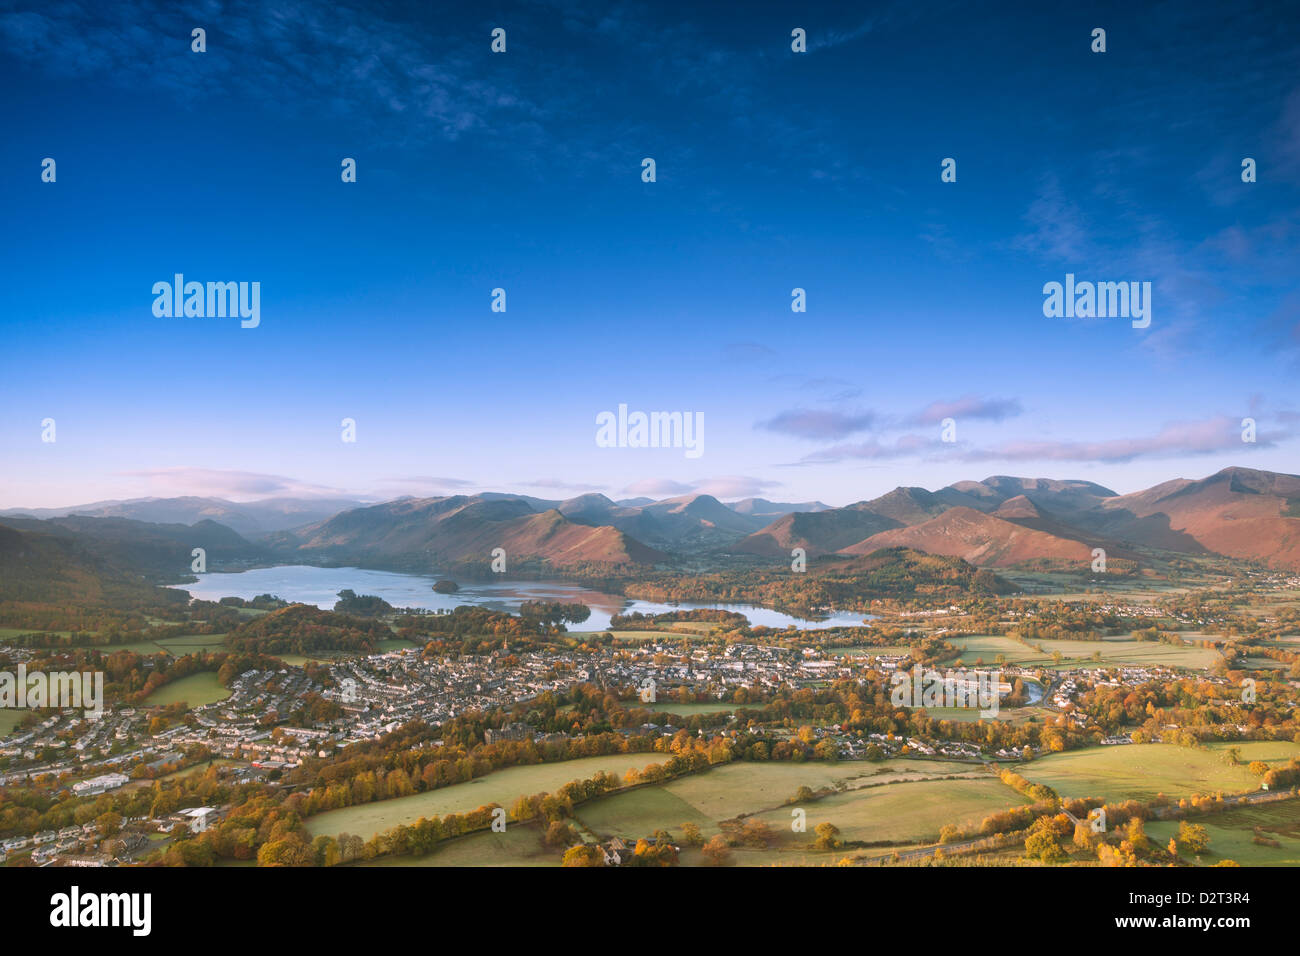 Derwentwater, Parc National de Lake District, Cumbria, Angleterre, Royaume-Uni, Europe Photo Stock